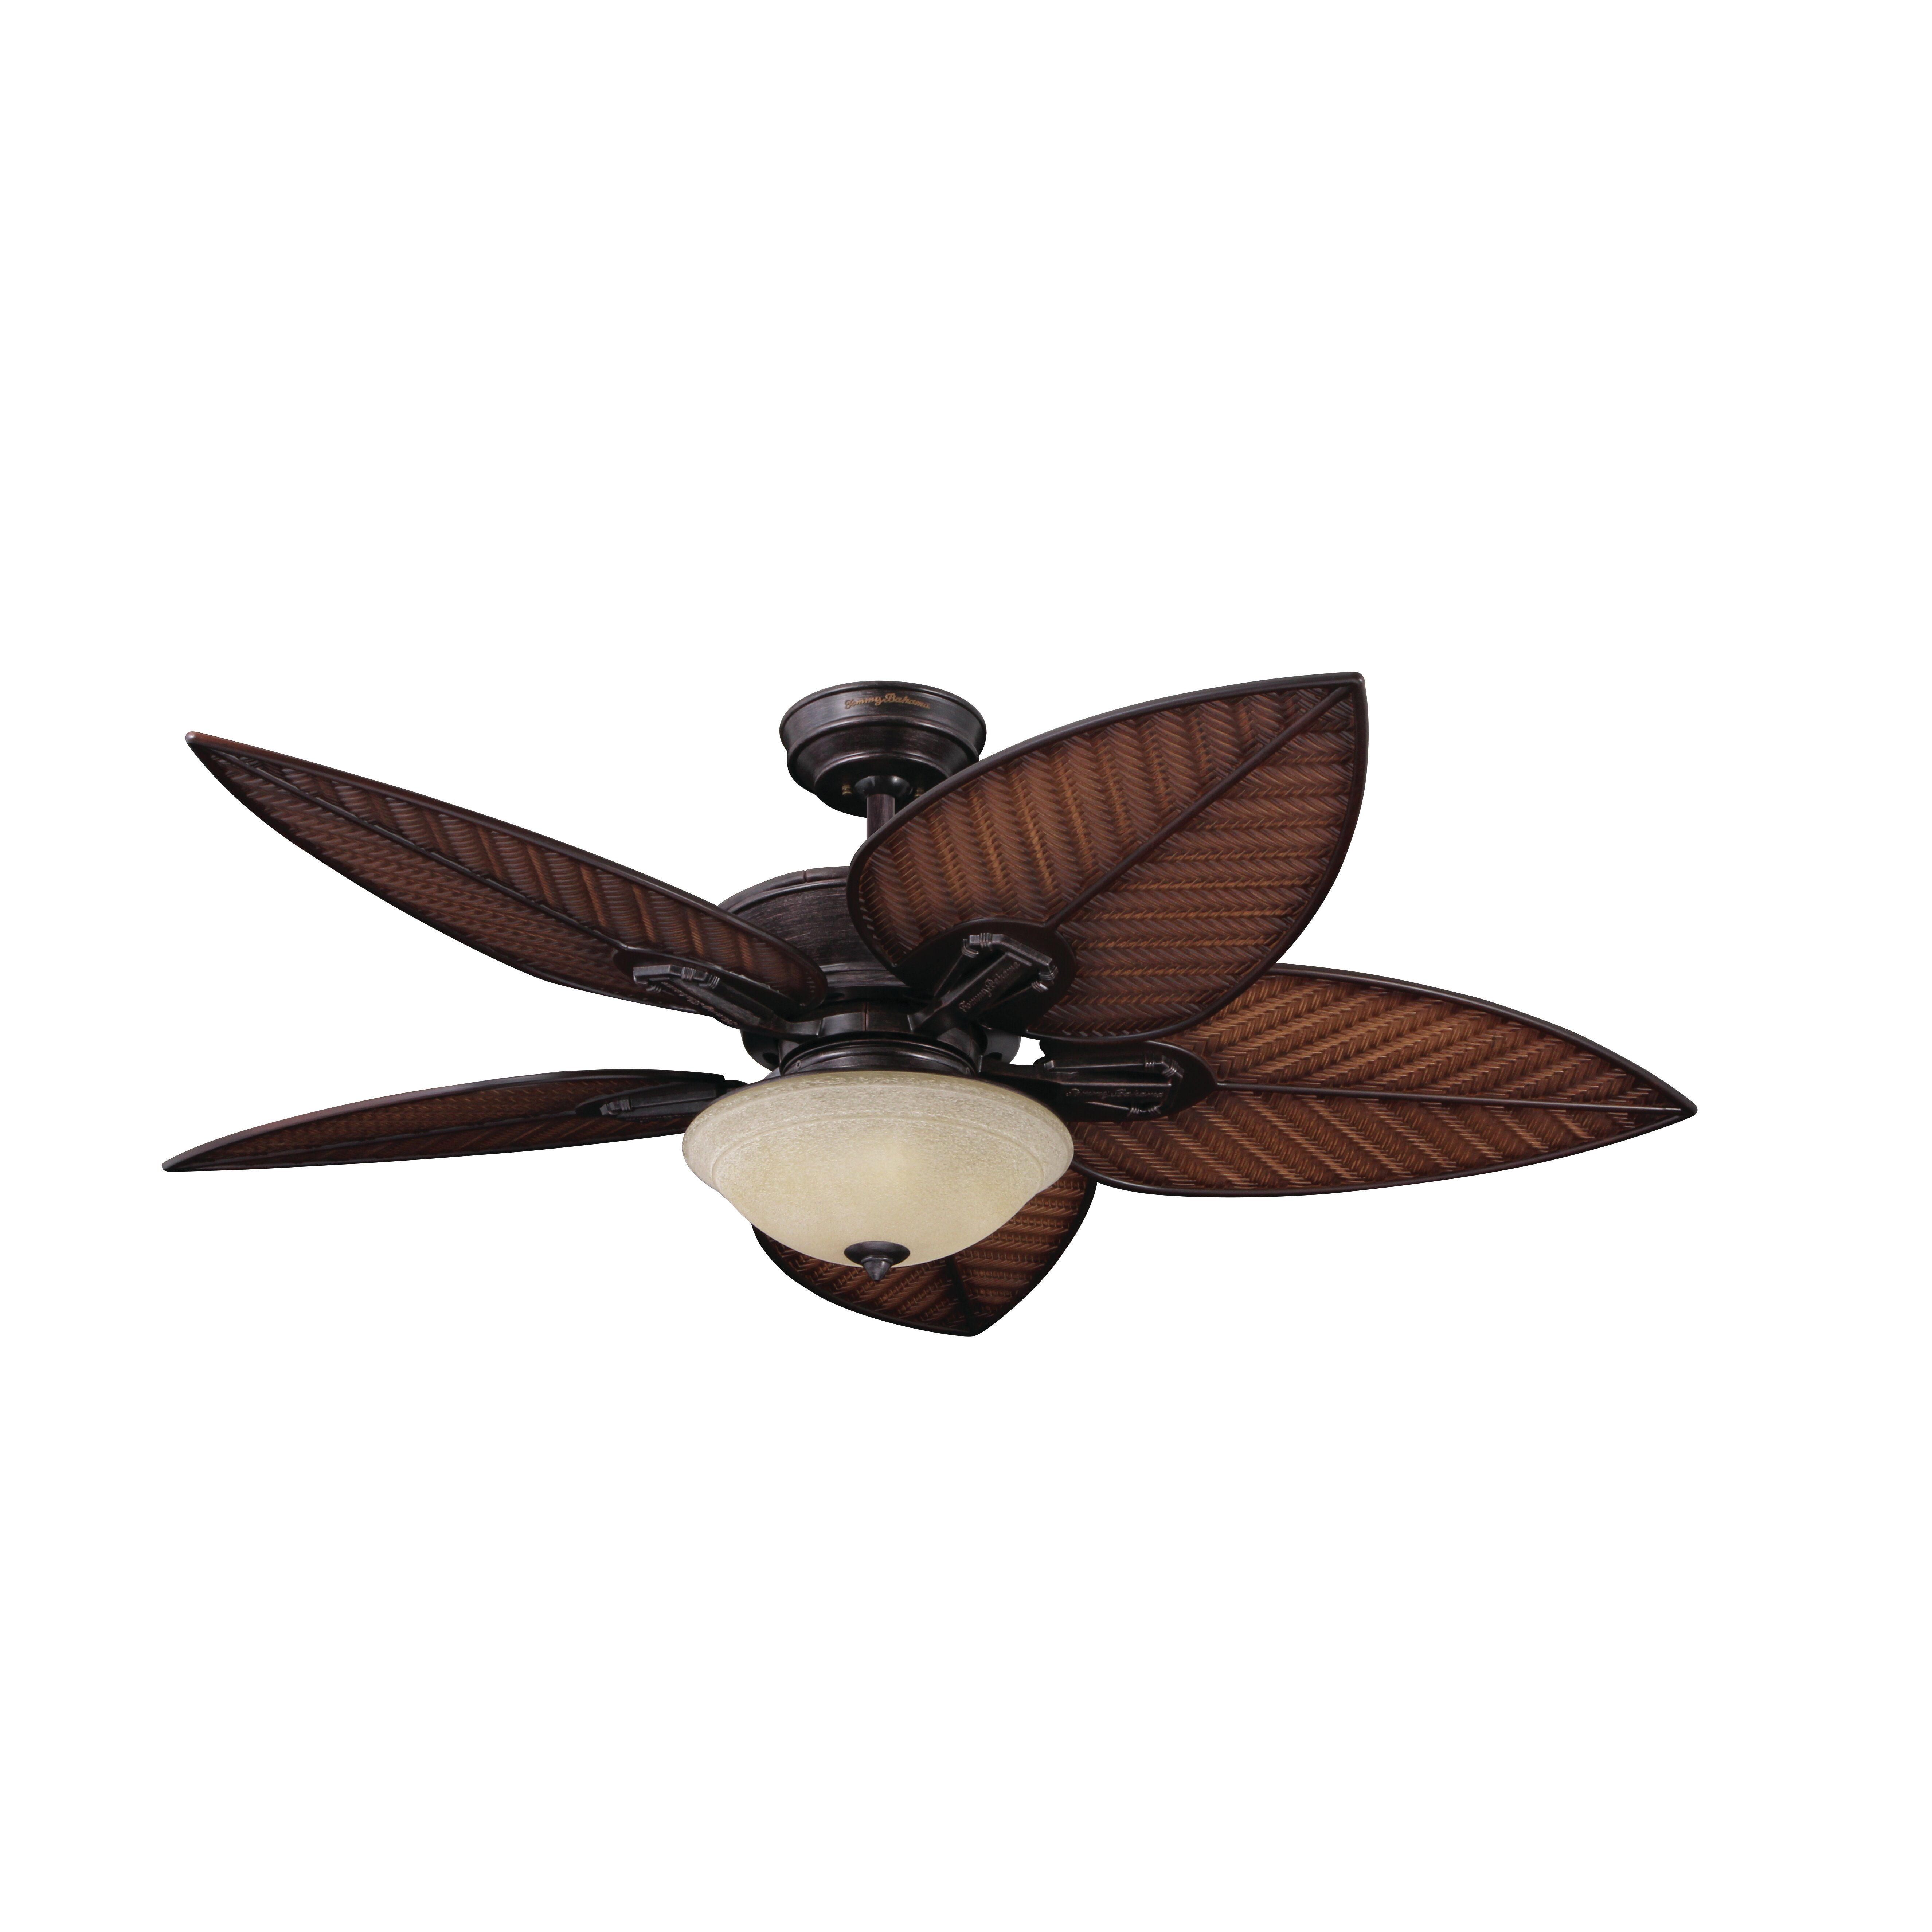 Tommy Bahama Fans 52 Quot Cabrillo Cove 5 Blade Ceiling Fan